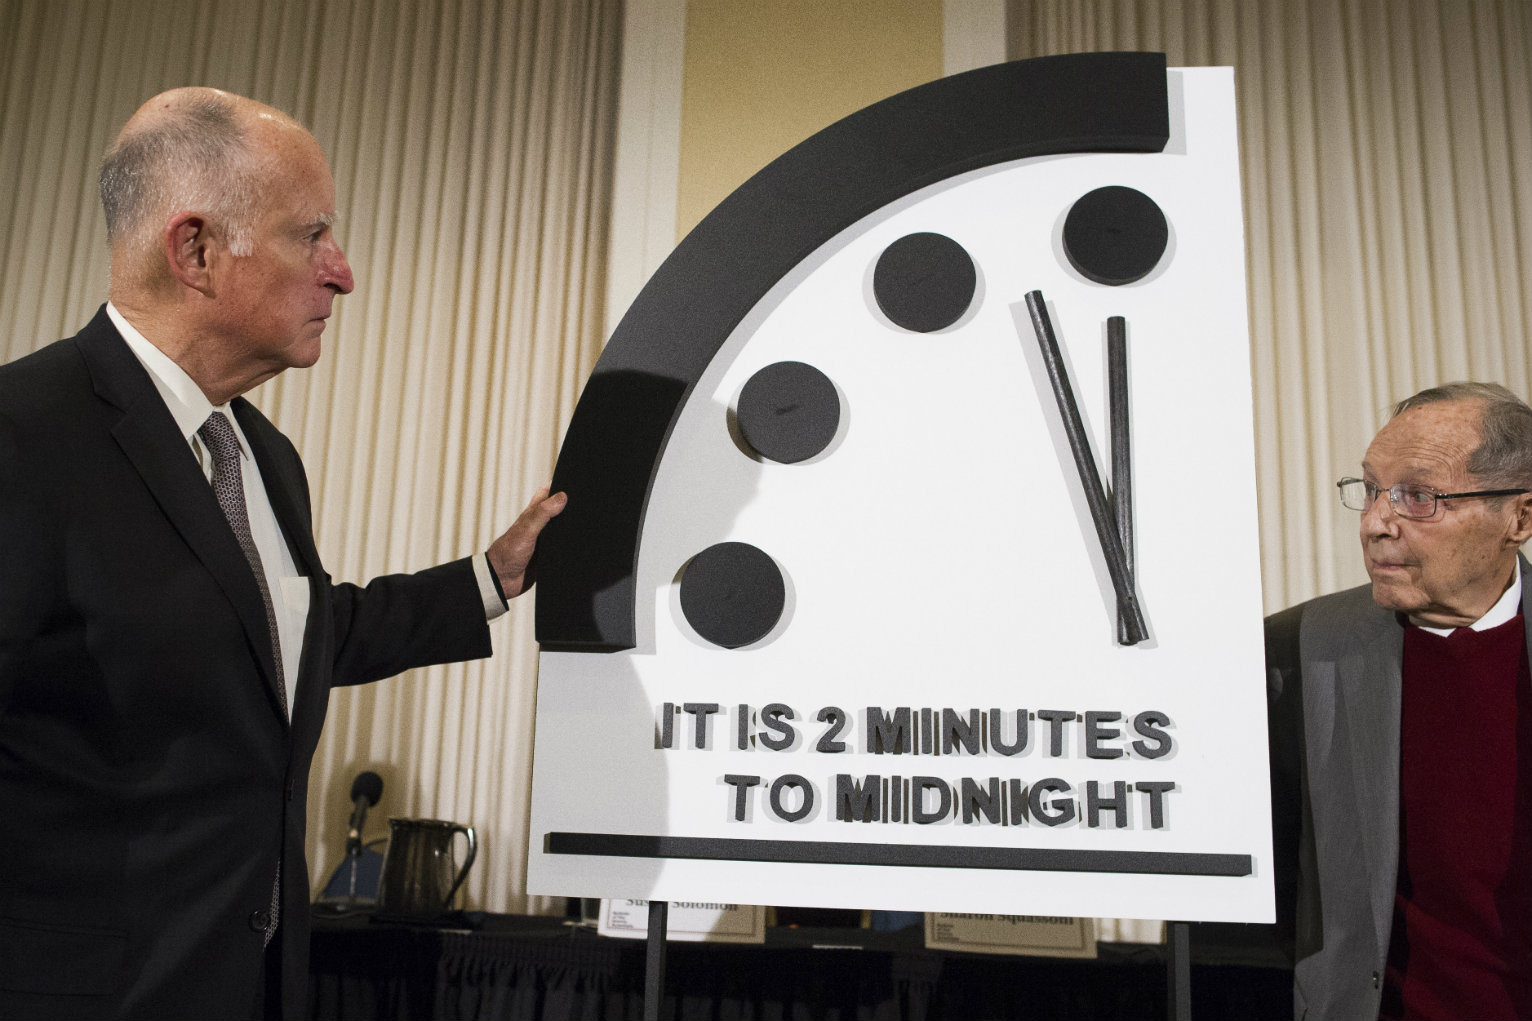 Scientists Inch Doomsday Clock Closer To Midnight Citing Nuclear Climate Threats National News Us News